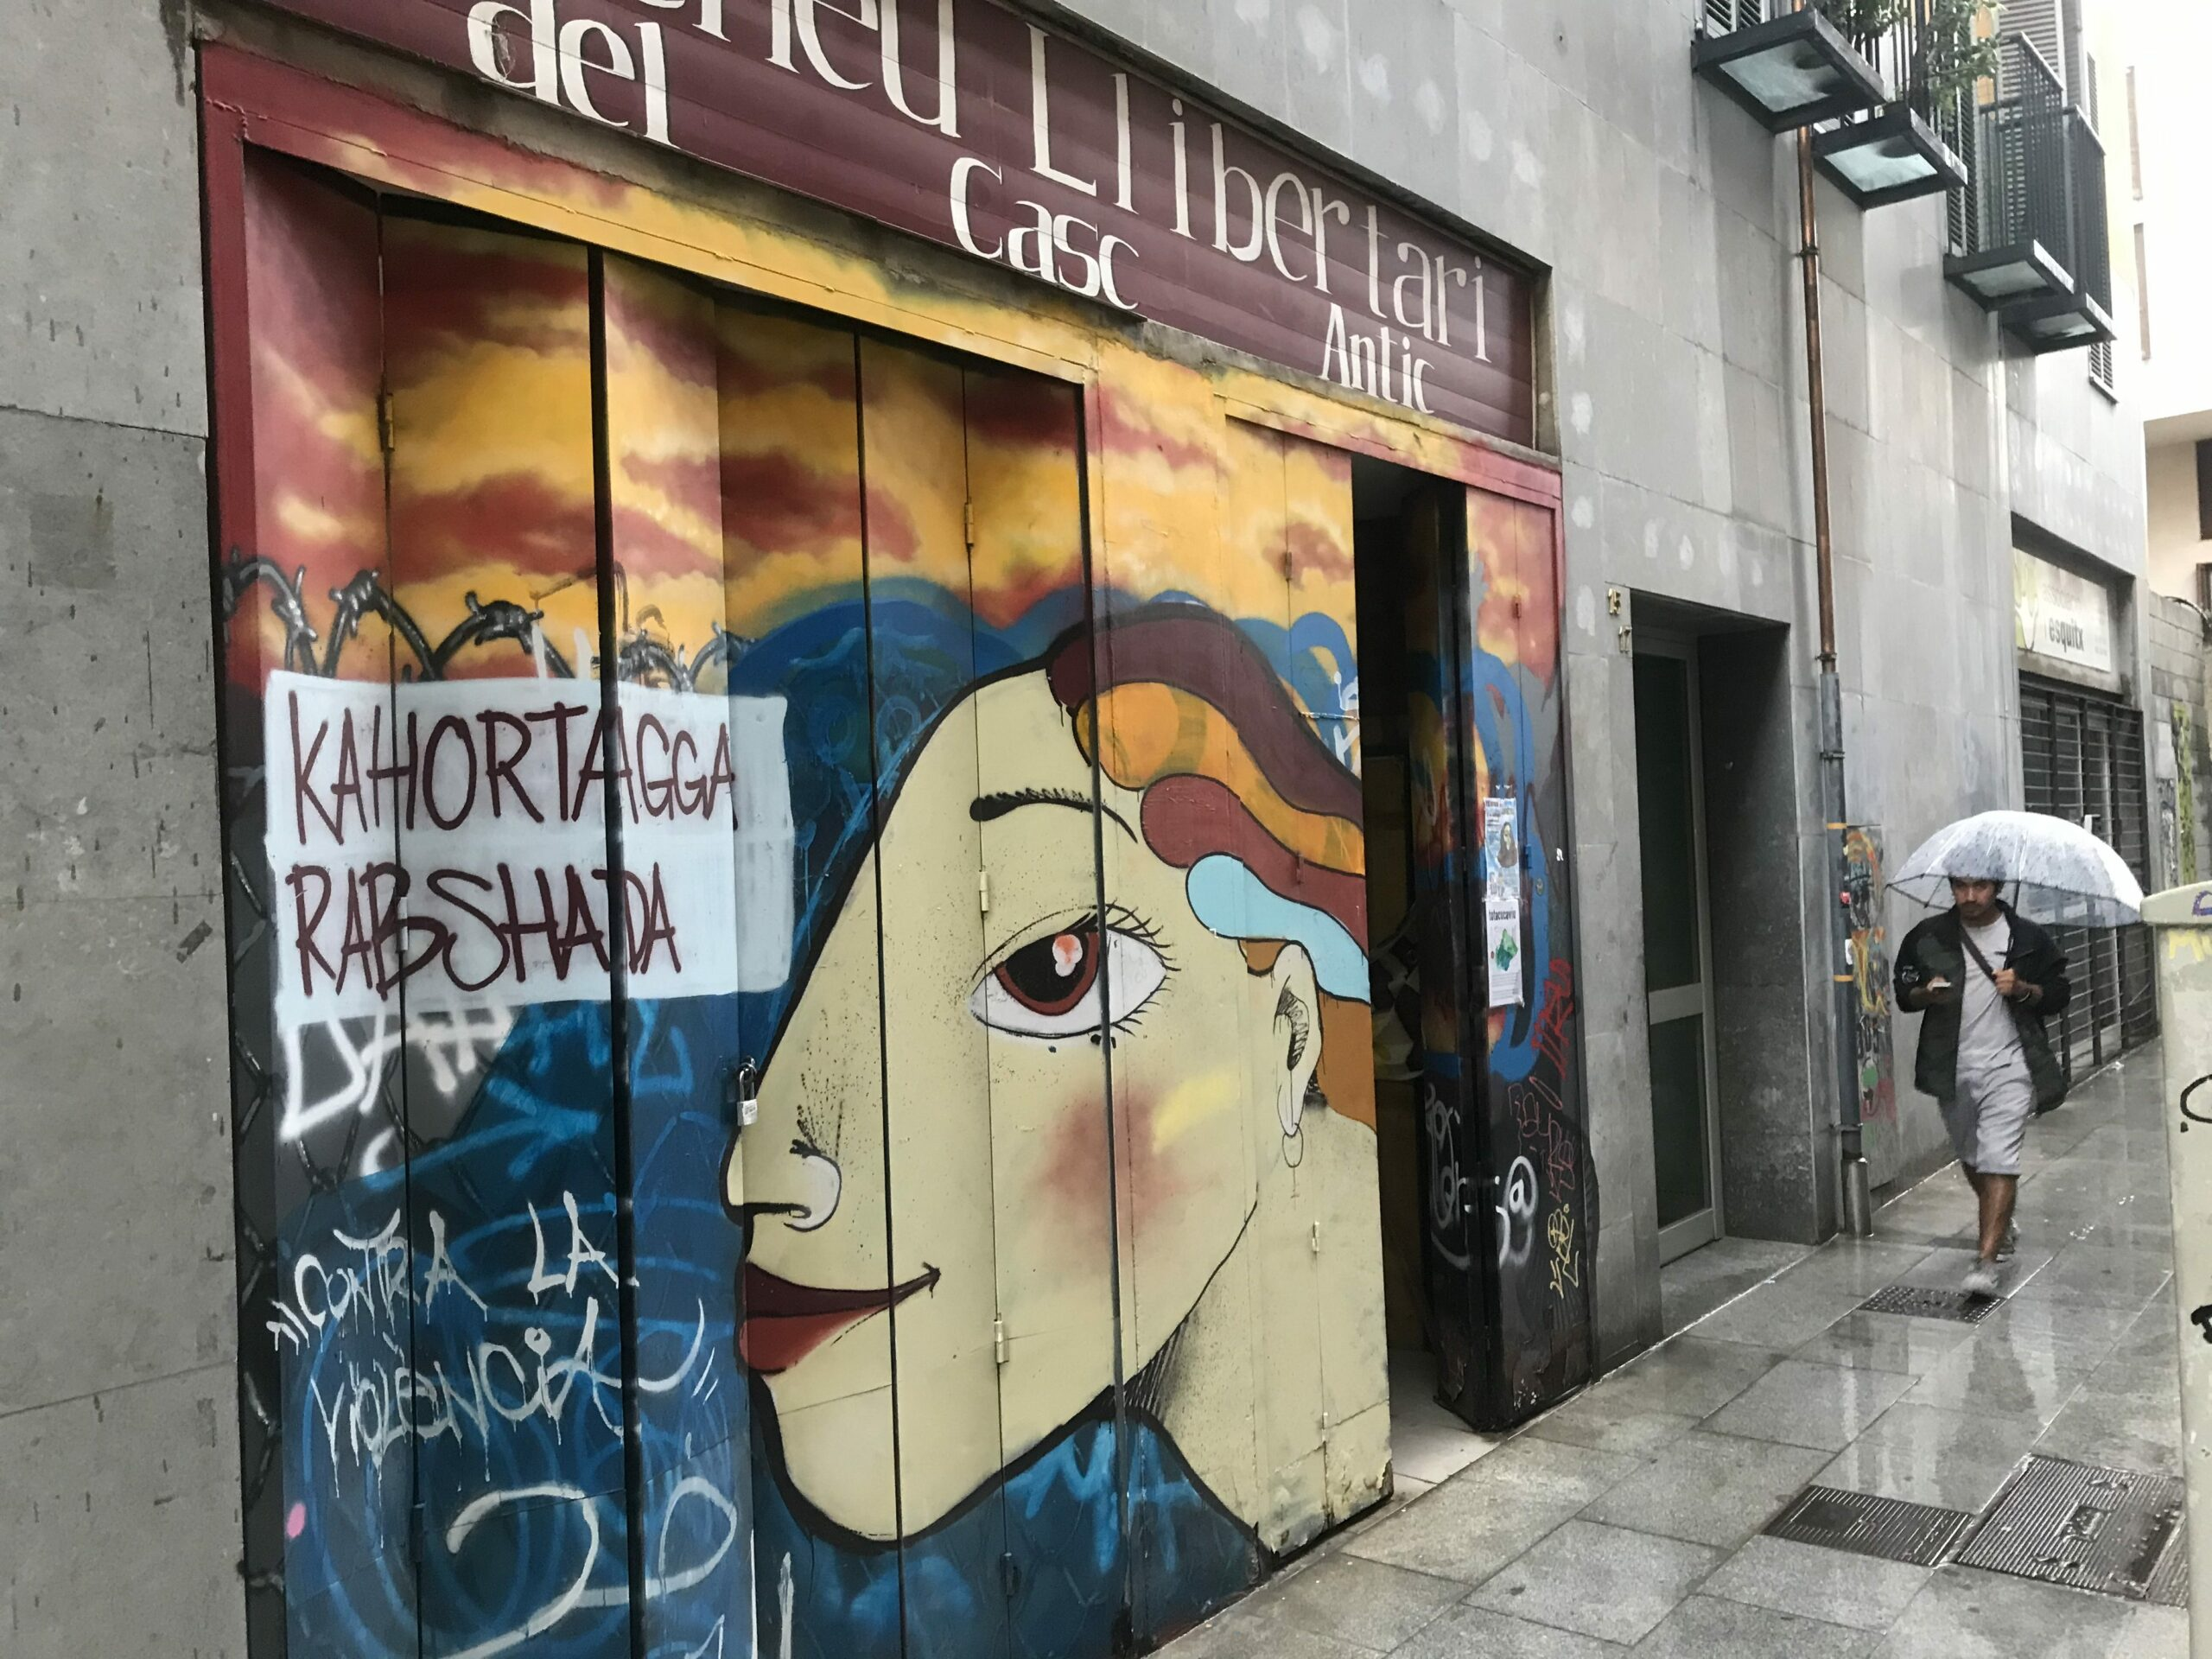 Amazing Artwork Shutters the Storefronts of Barcelona